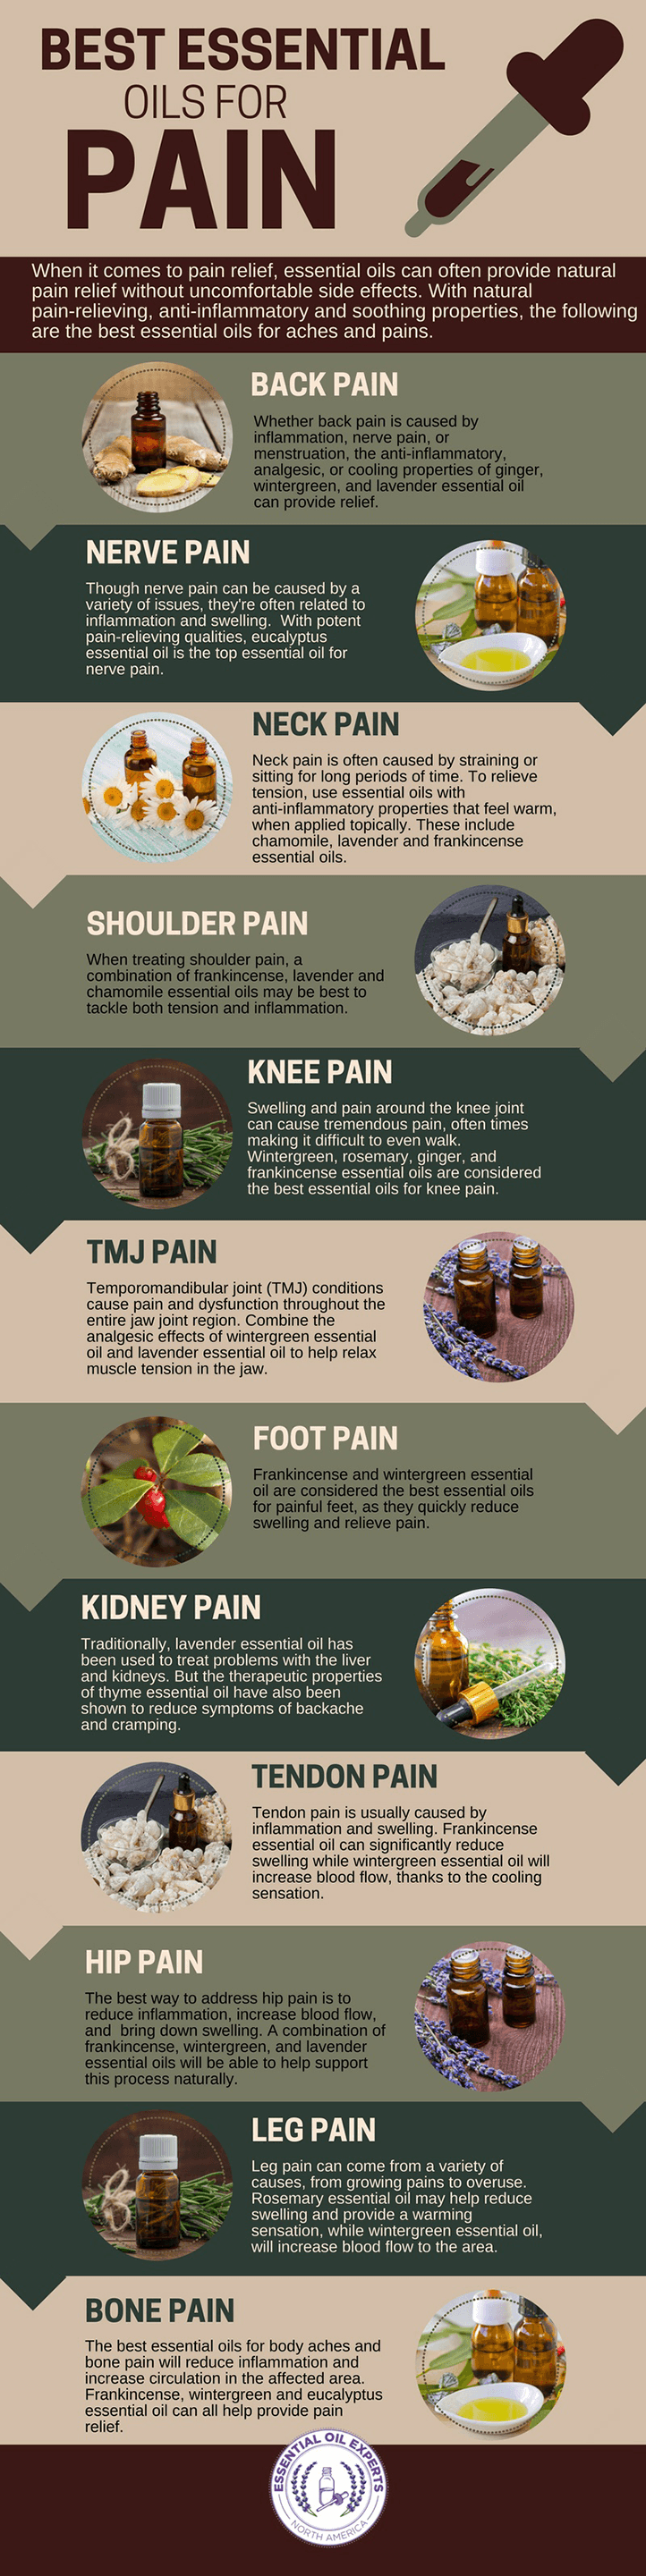 Best Essential Oils for Pain Management | EssentialOilExperts.com